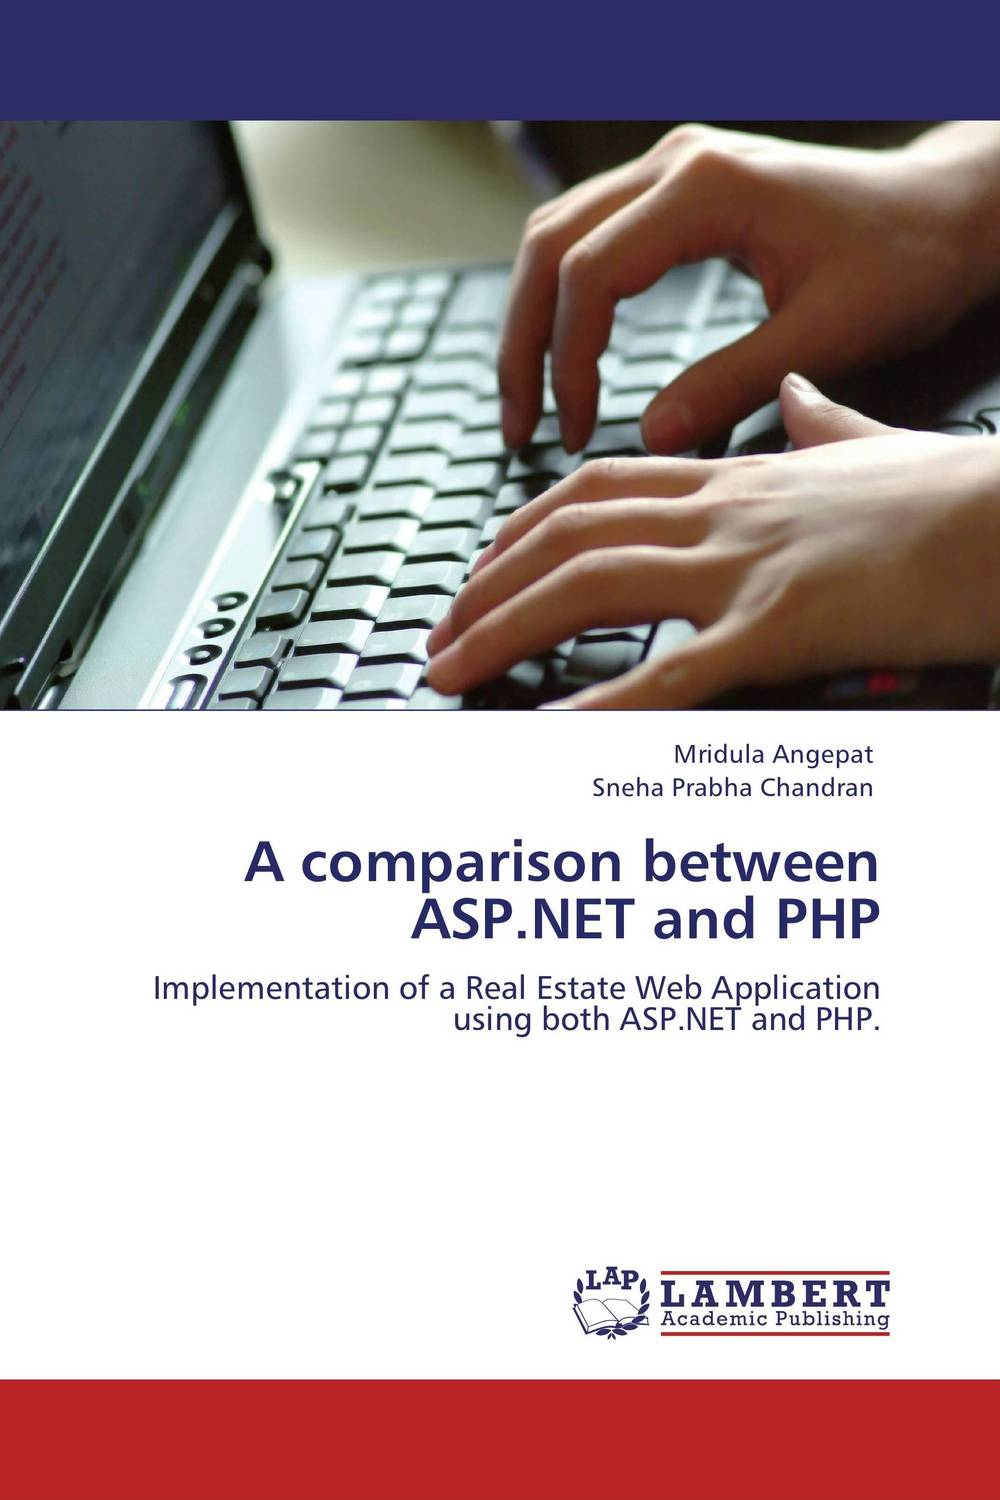 A comparison between ASP.NET and PHP admin